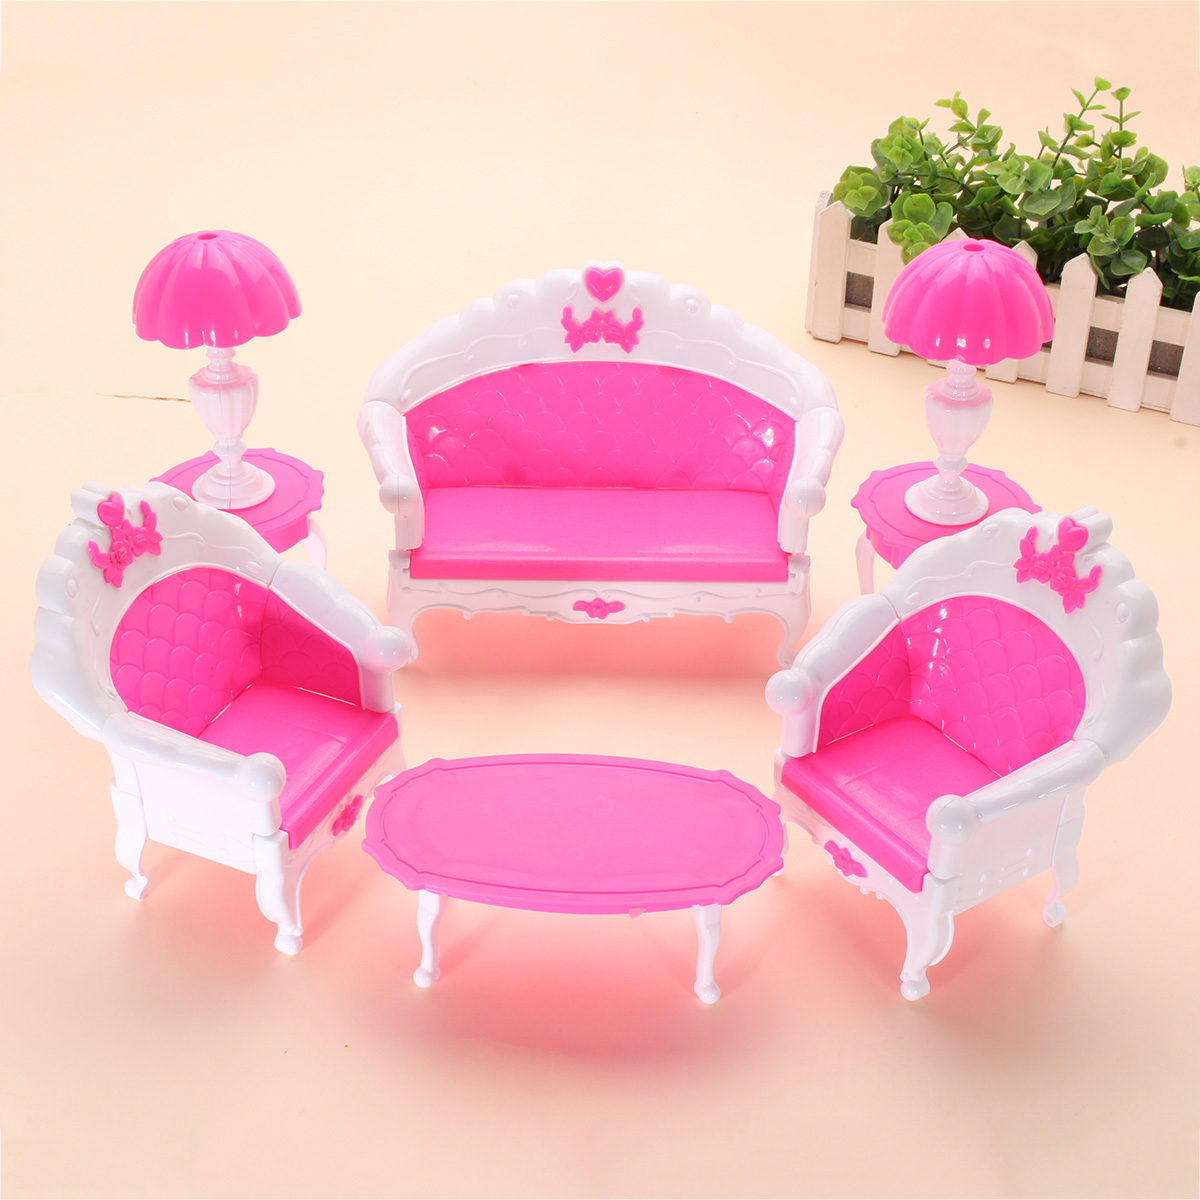 Ebay Sofa Pink Details About 6x Sofa Chair Table Lamp Living Room Set Dolls House Miniature Furniture Toy